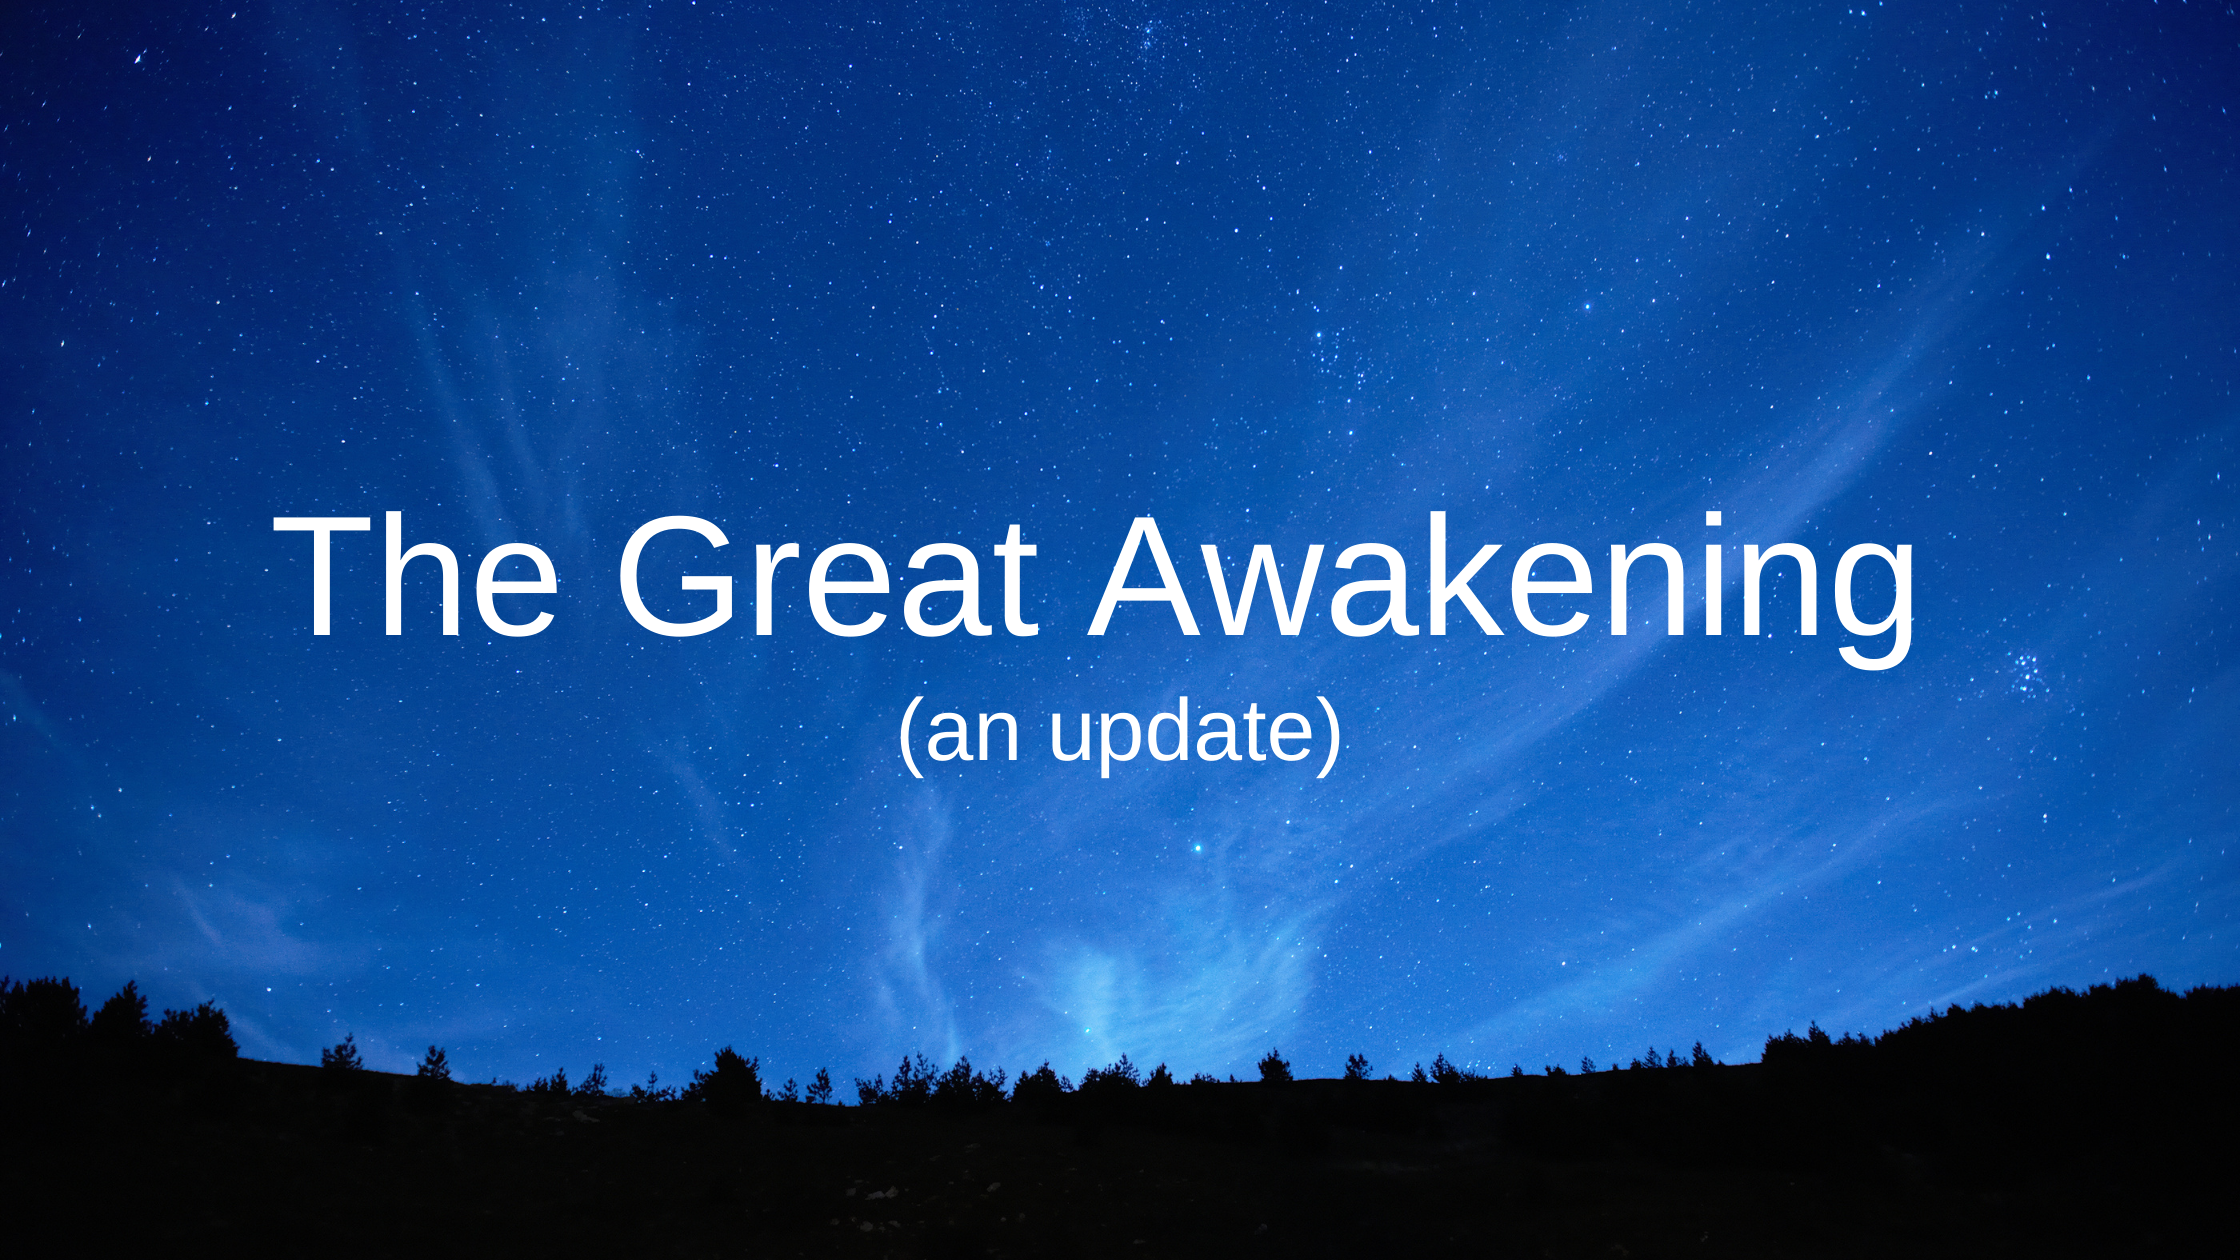 The-Great-Awakening-an-update